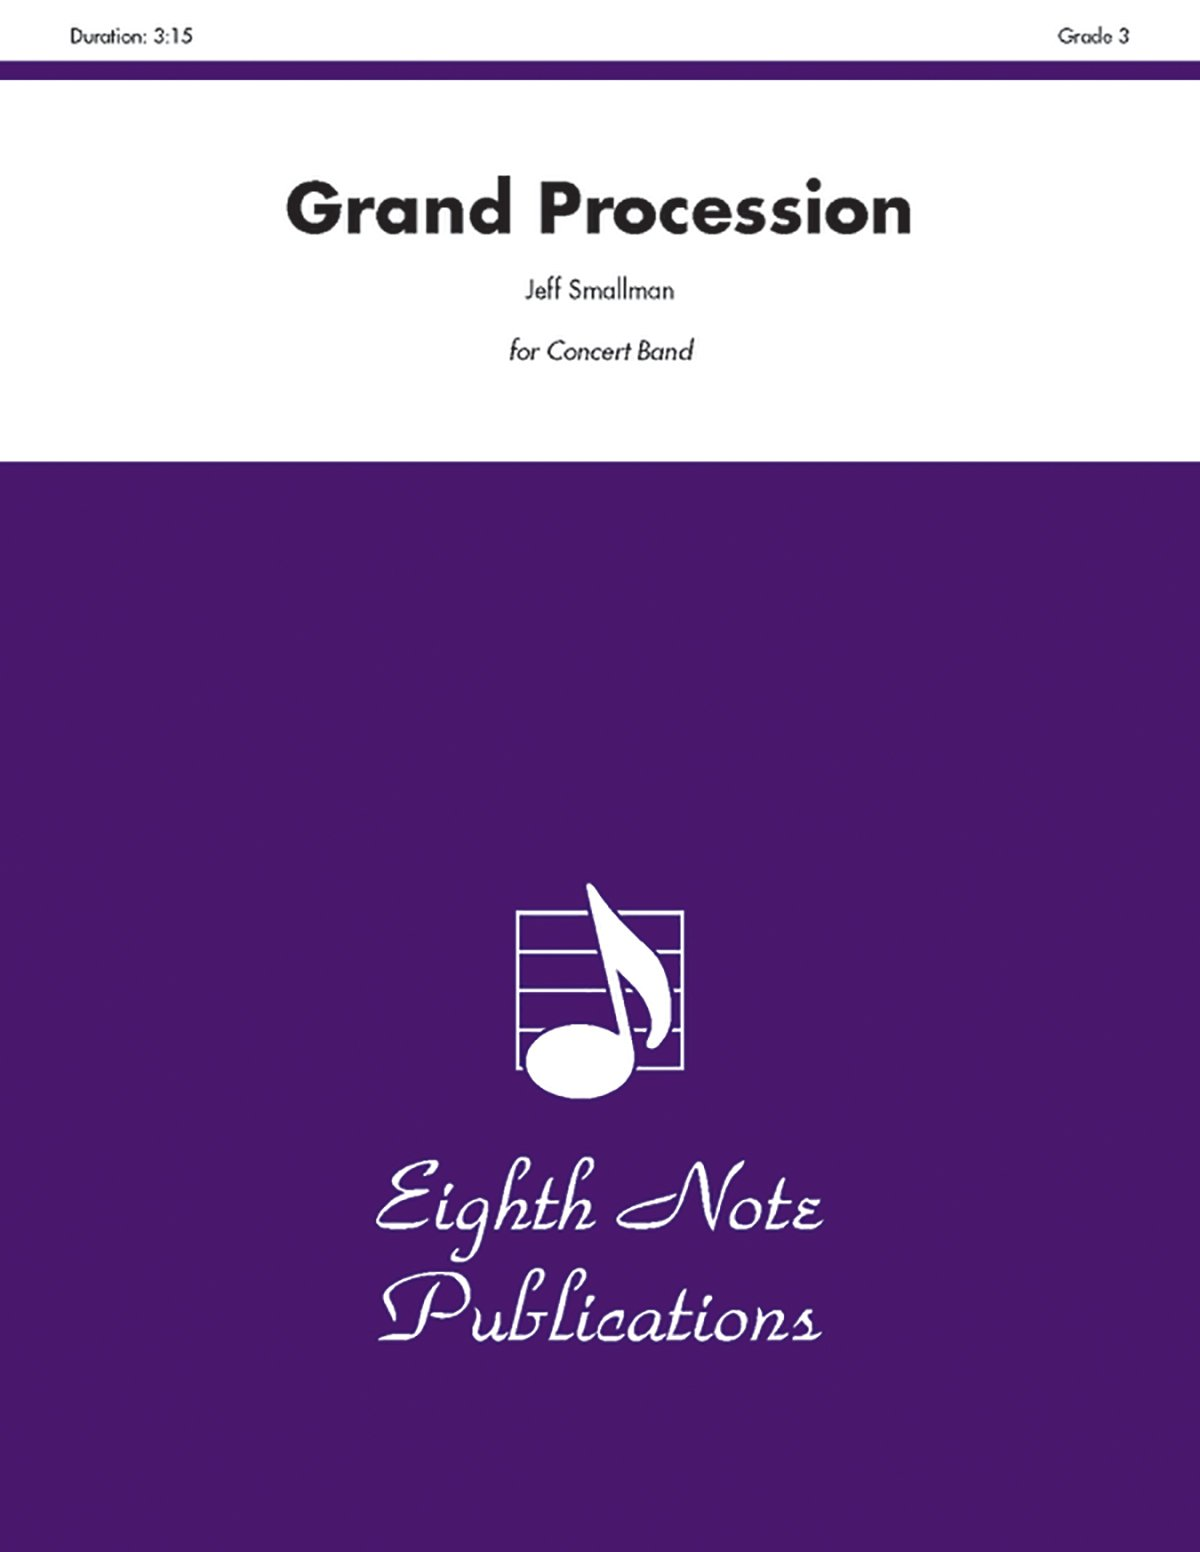 Download Grand Procession (Conductor Score & Parts) (Eighth Note Publications) PDF ePub fb2 ebook